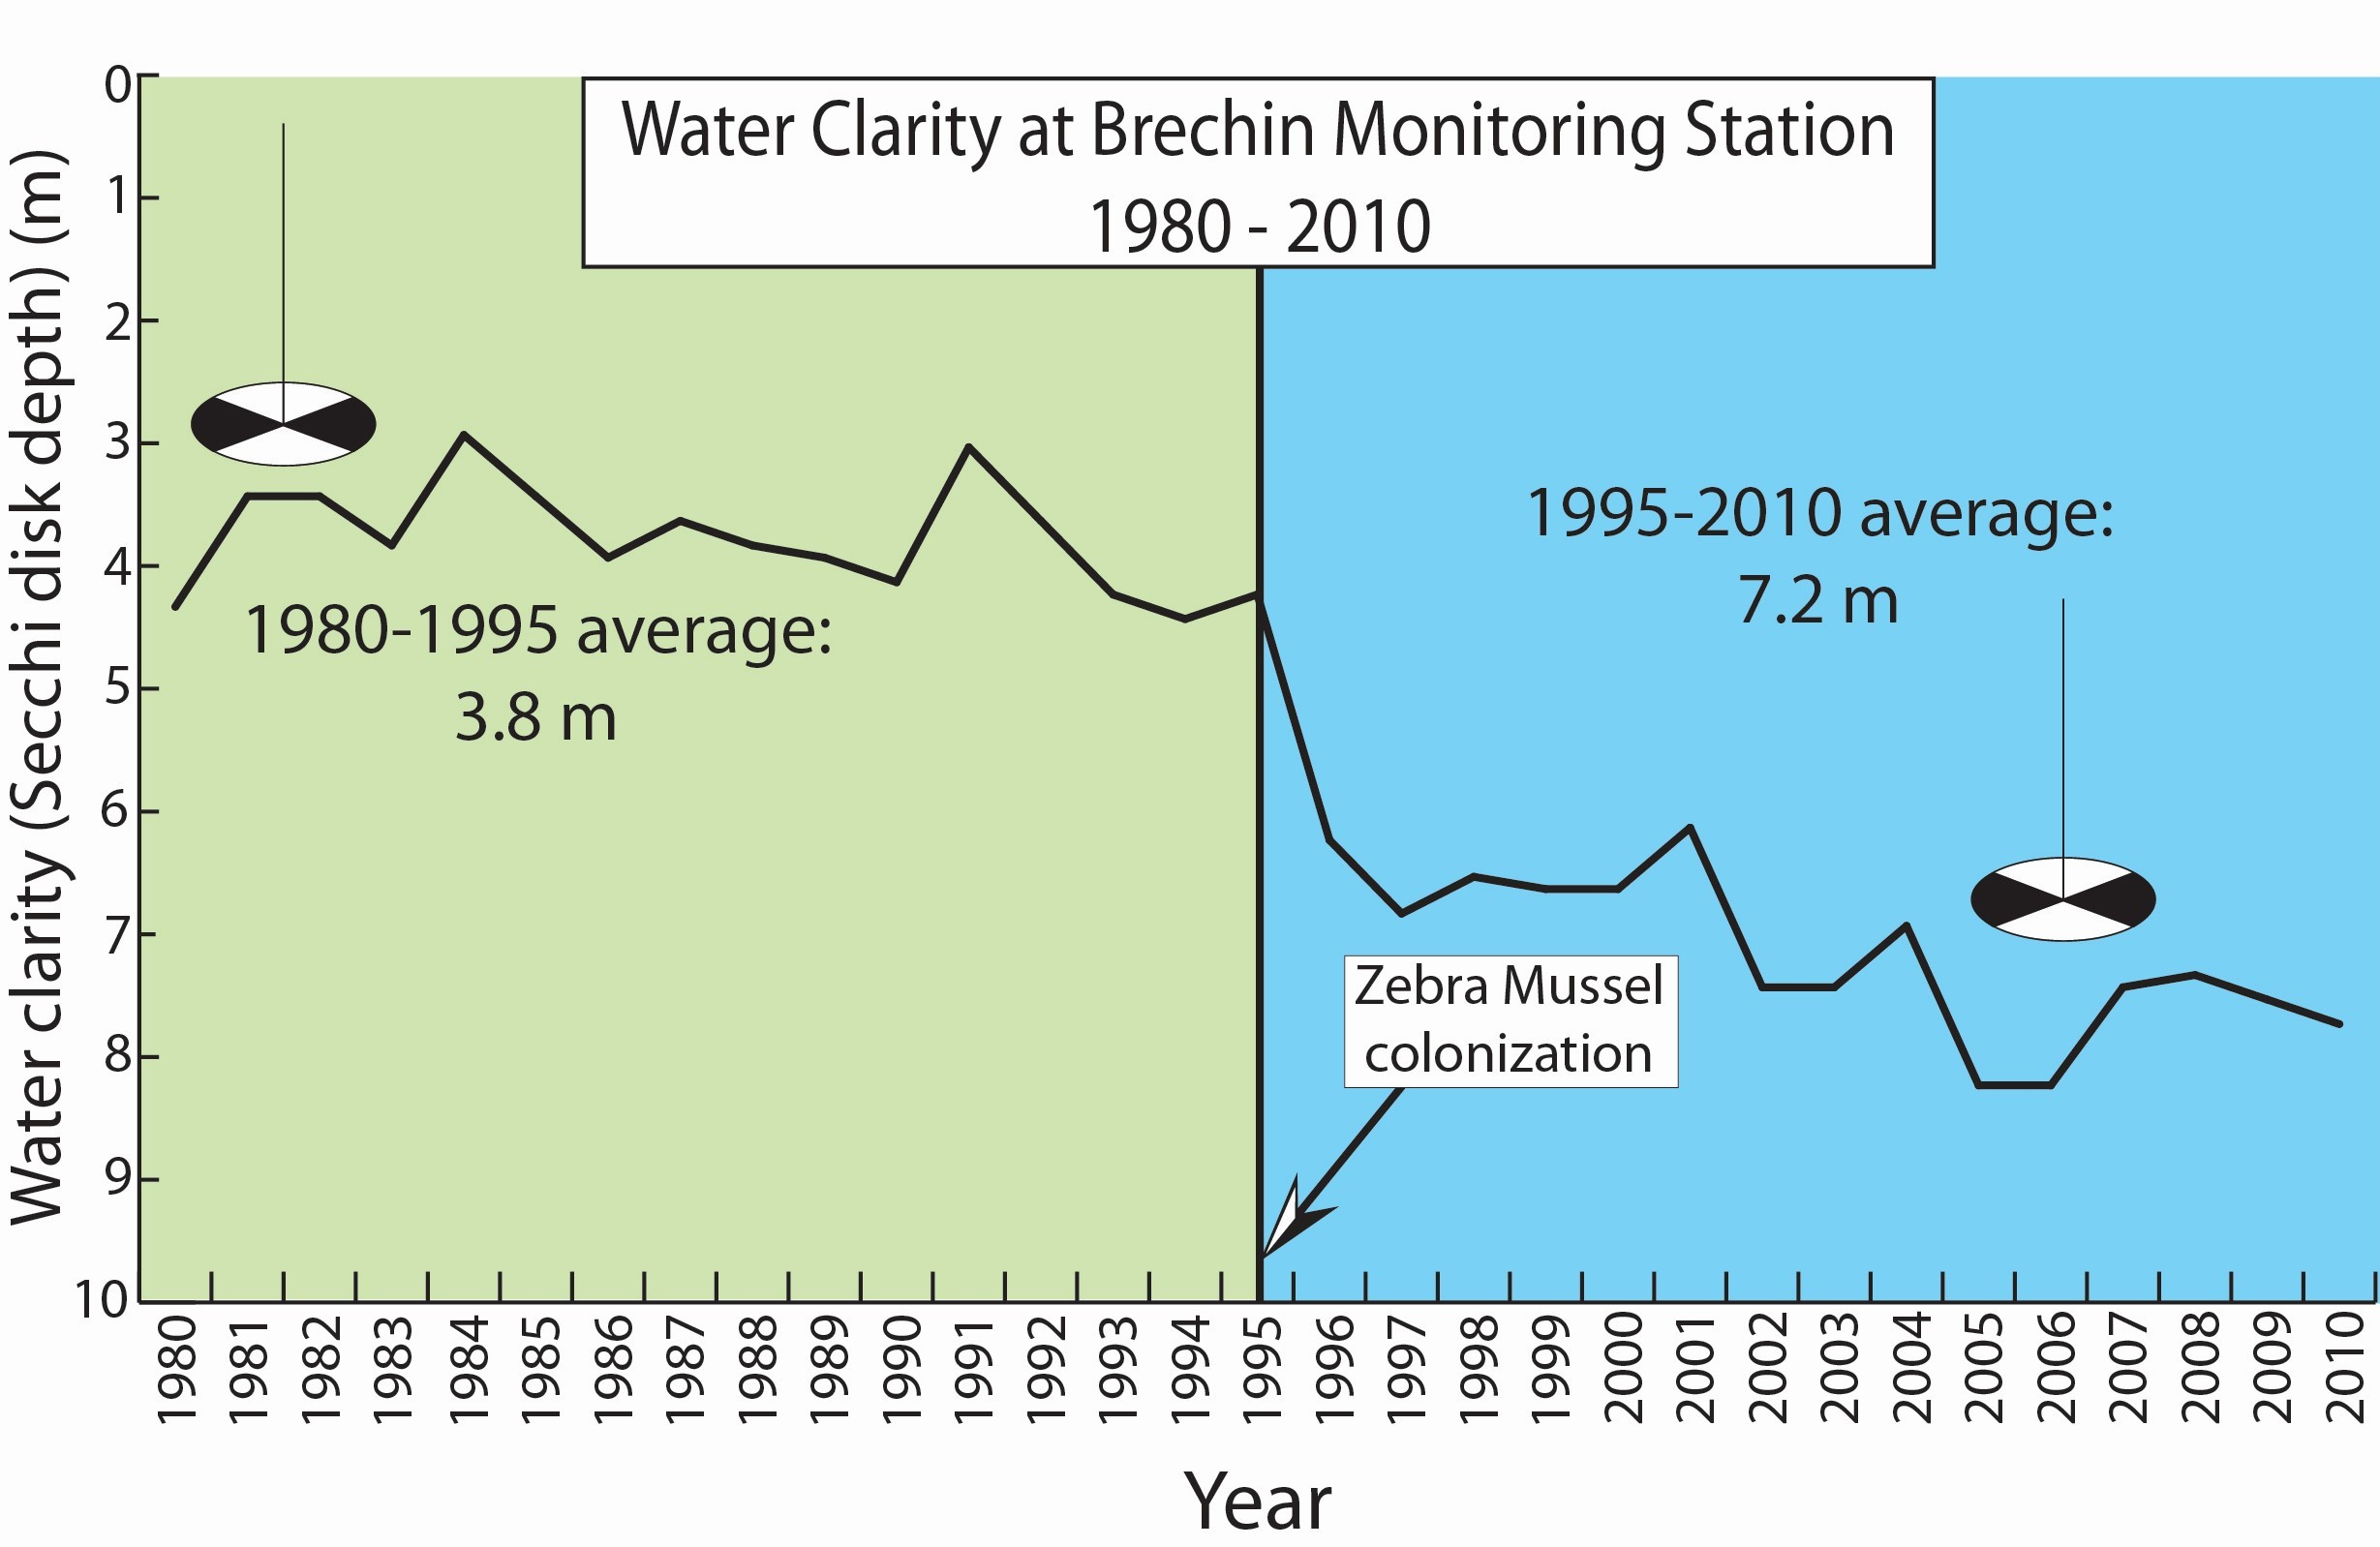 A graph showing water quality at Brechin Monitoring Station. Clarity increases after zebra mussel colonization.